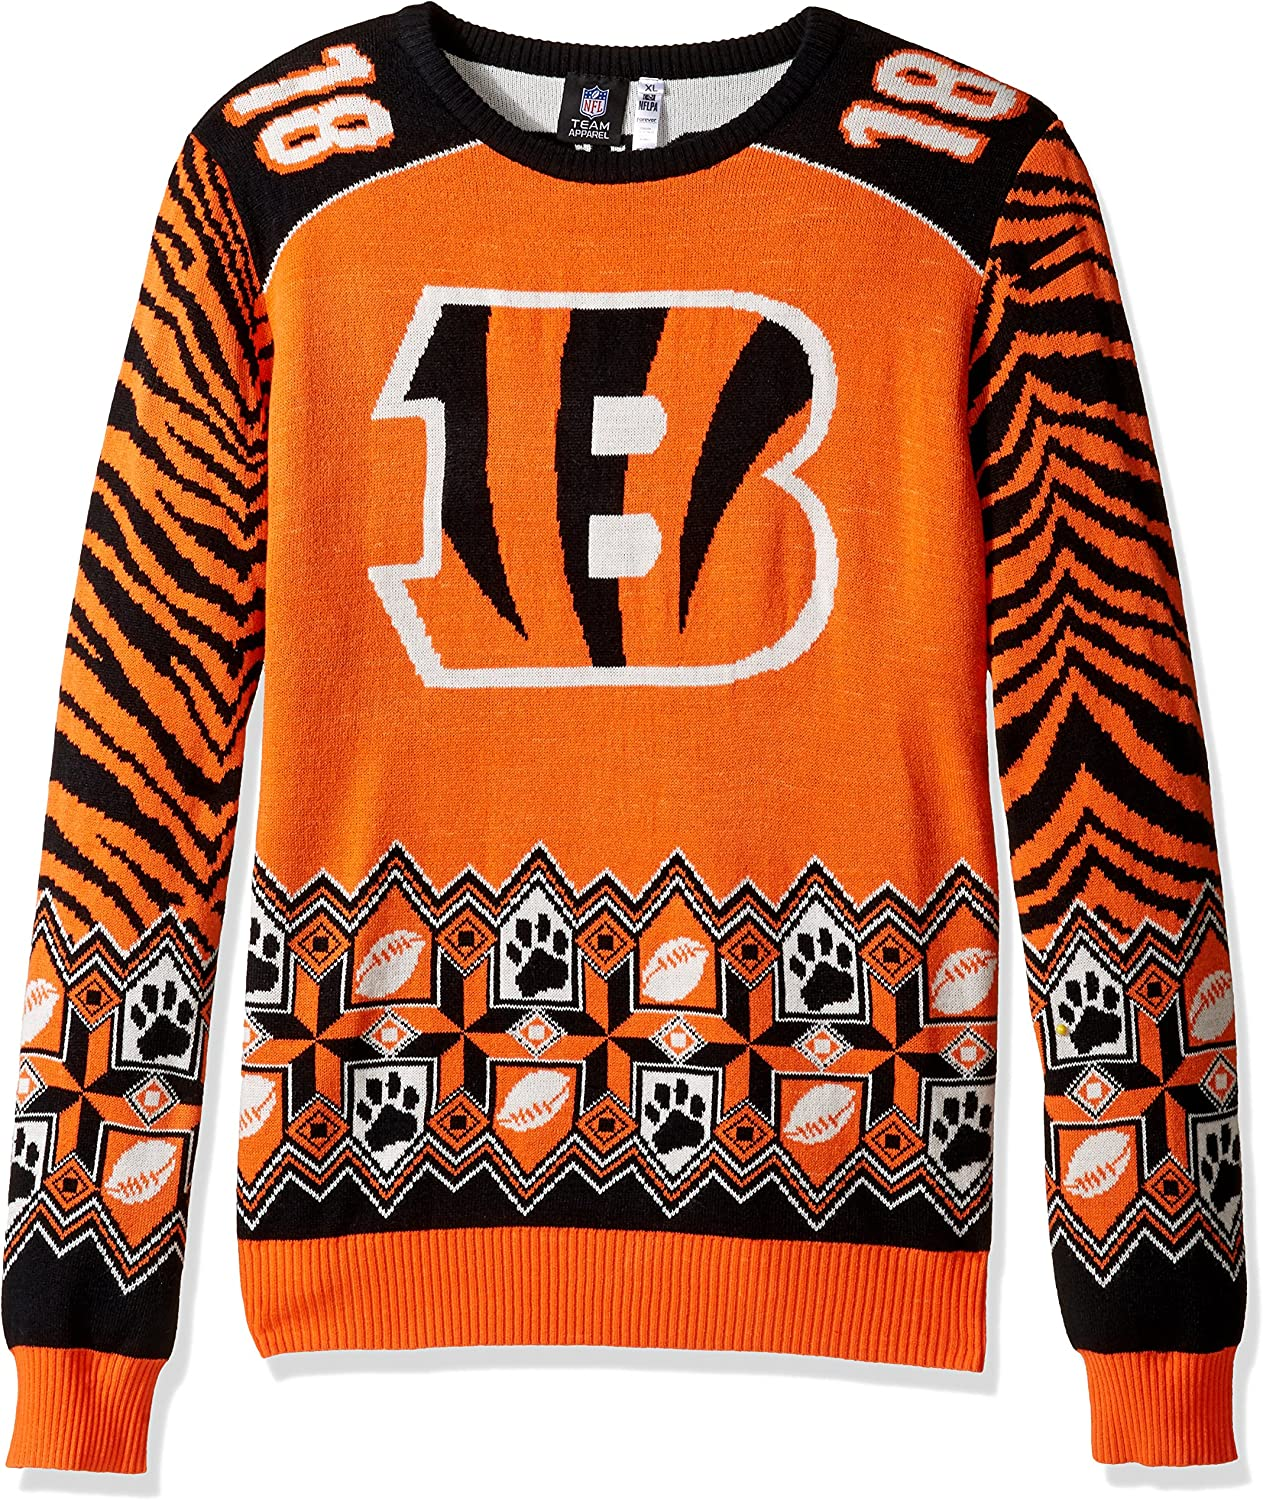 FOCO NFL Player Name and Number Ugly Sweater